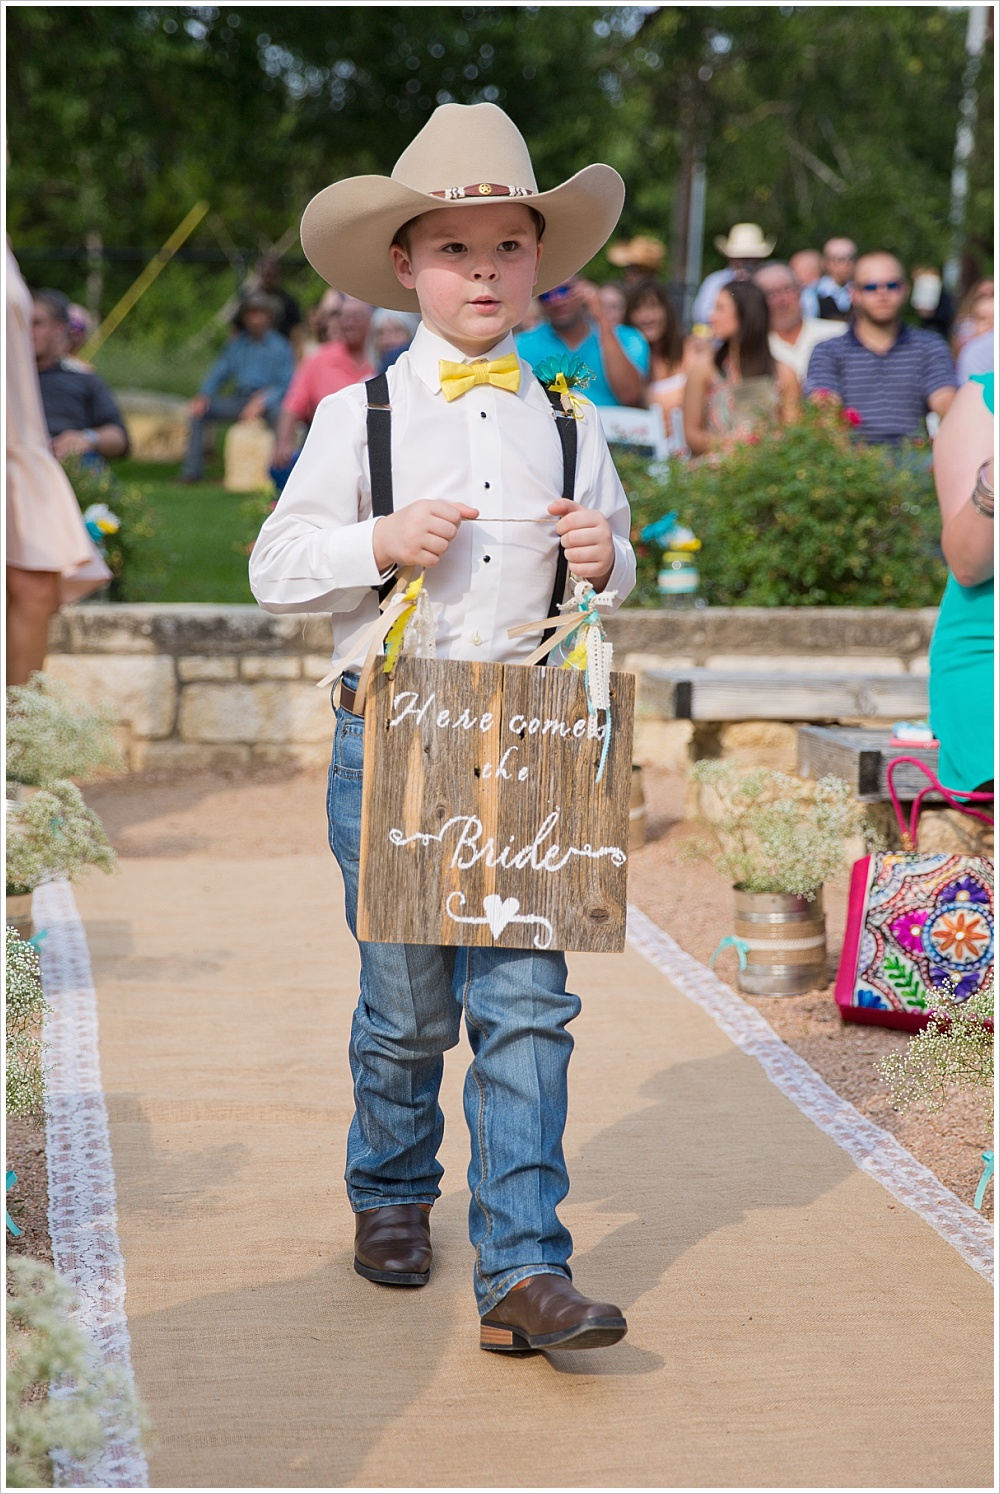 ring bearer | Carleen Bright Arboretum wedding venue in Woodway, TX | Jason & Melaina Photography